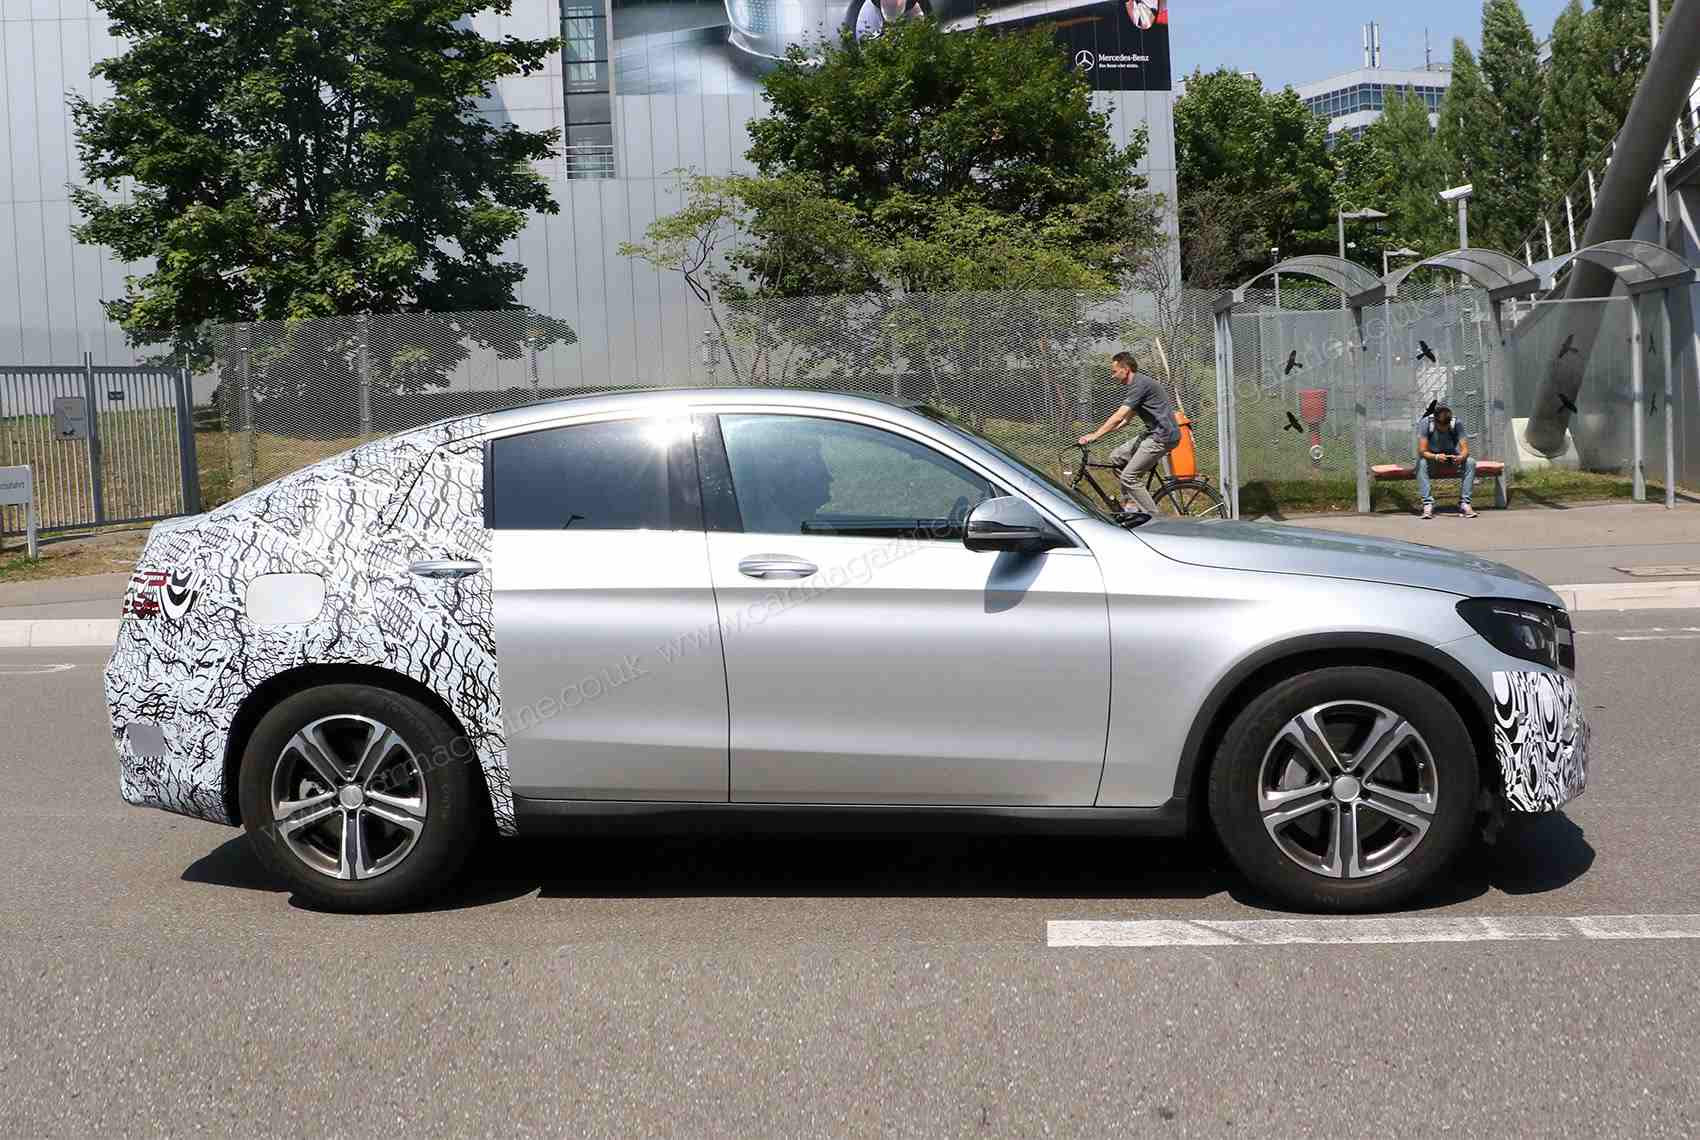 Mercedes-Benz GLC Coupe Spied with Minimal Camo